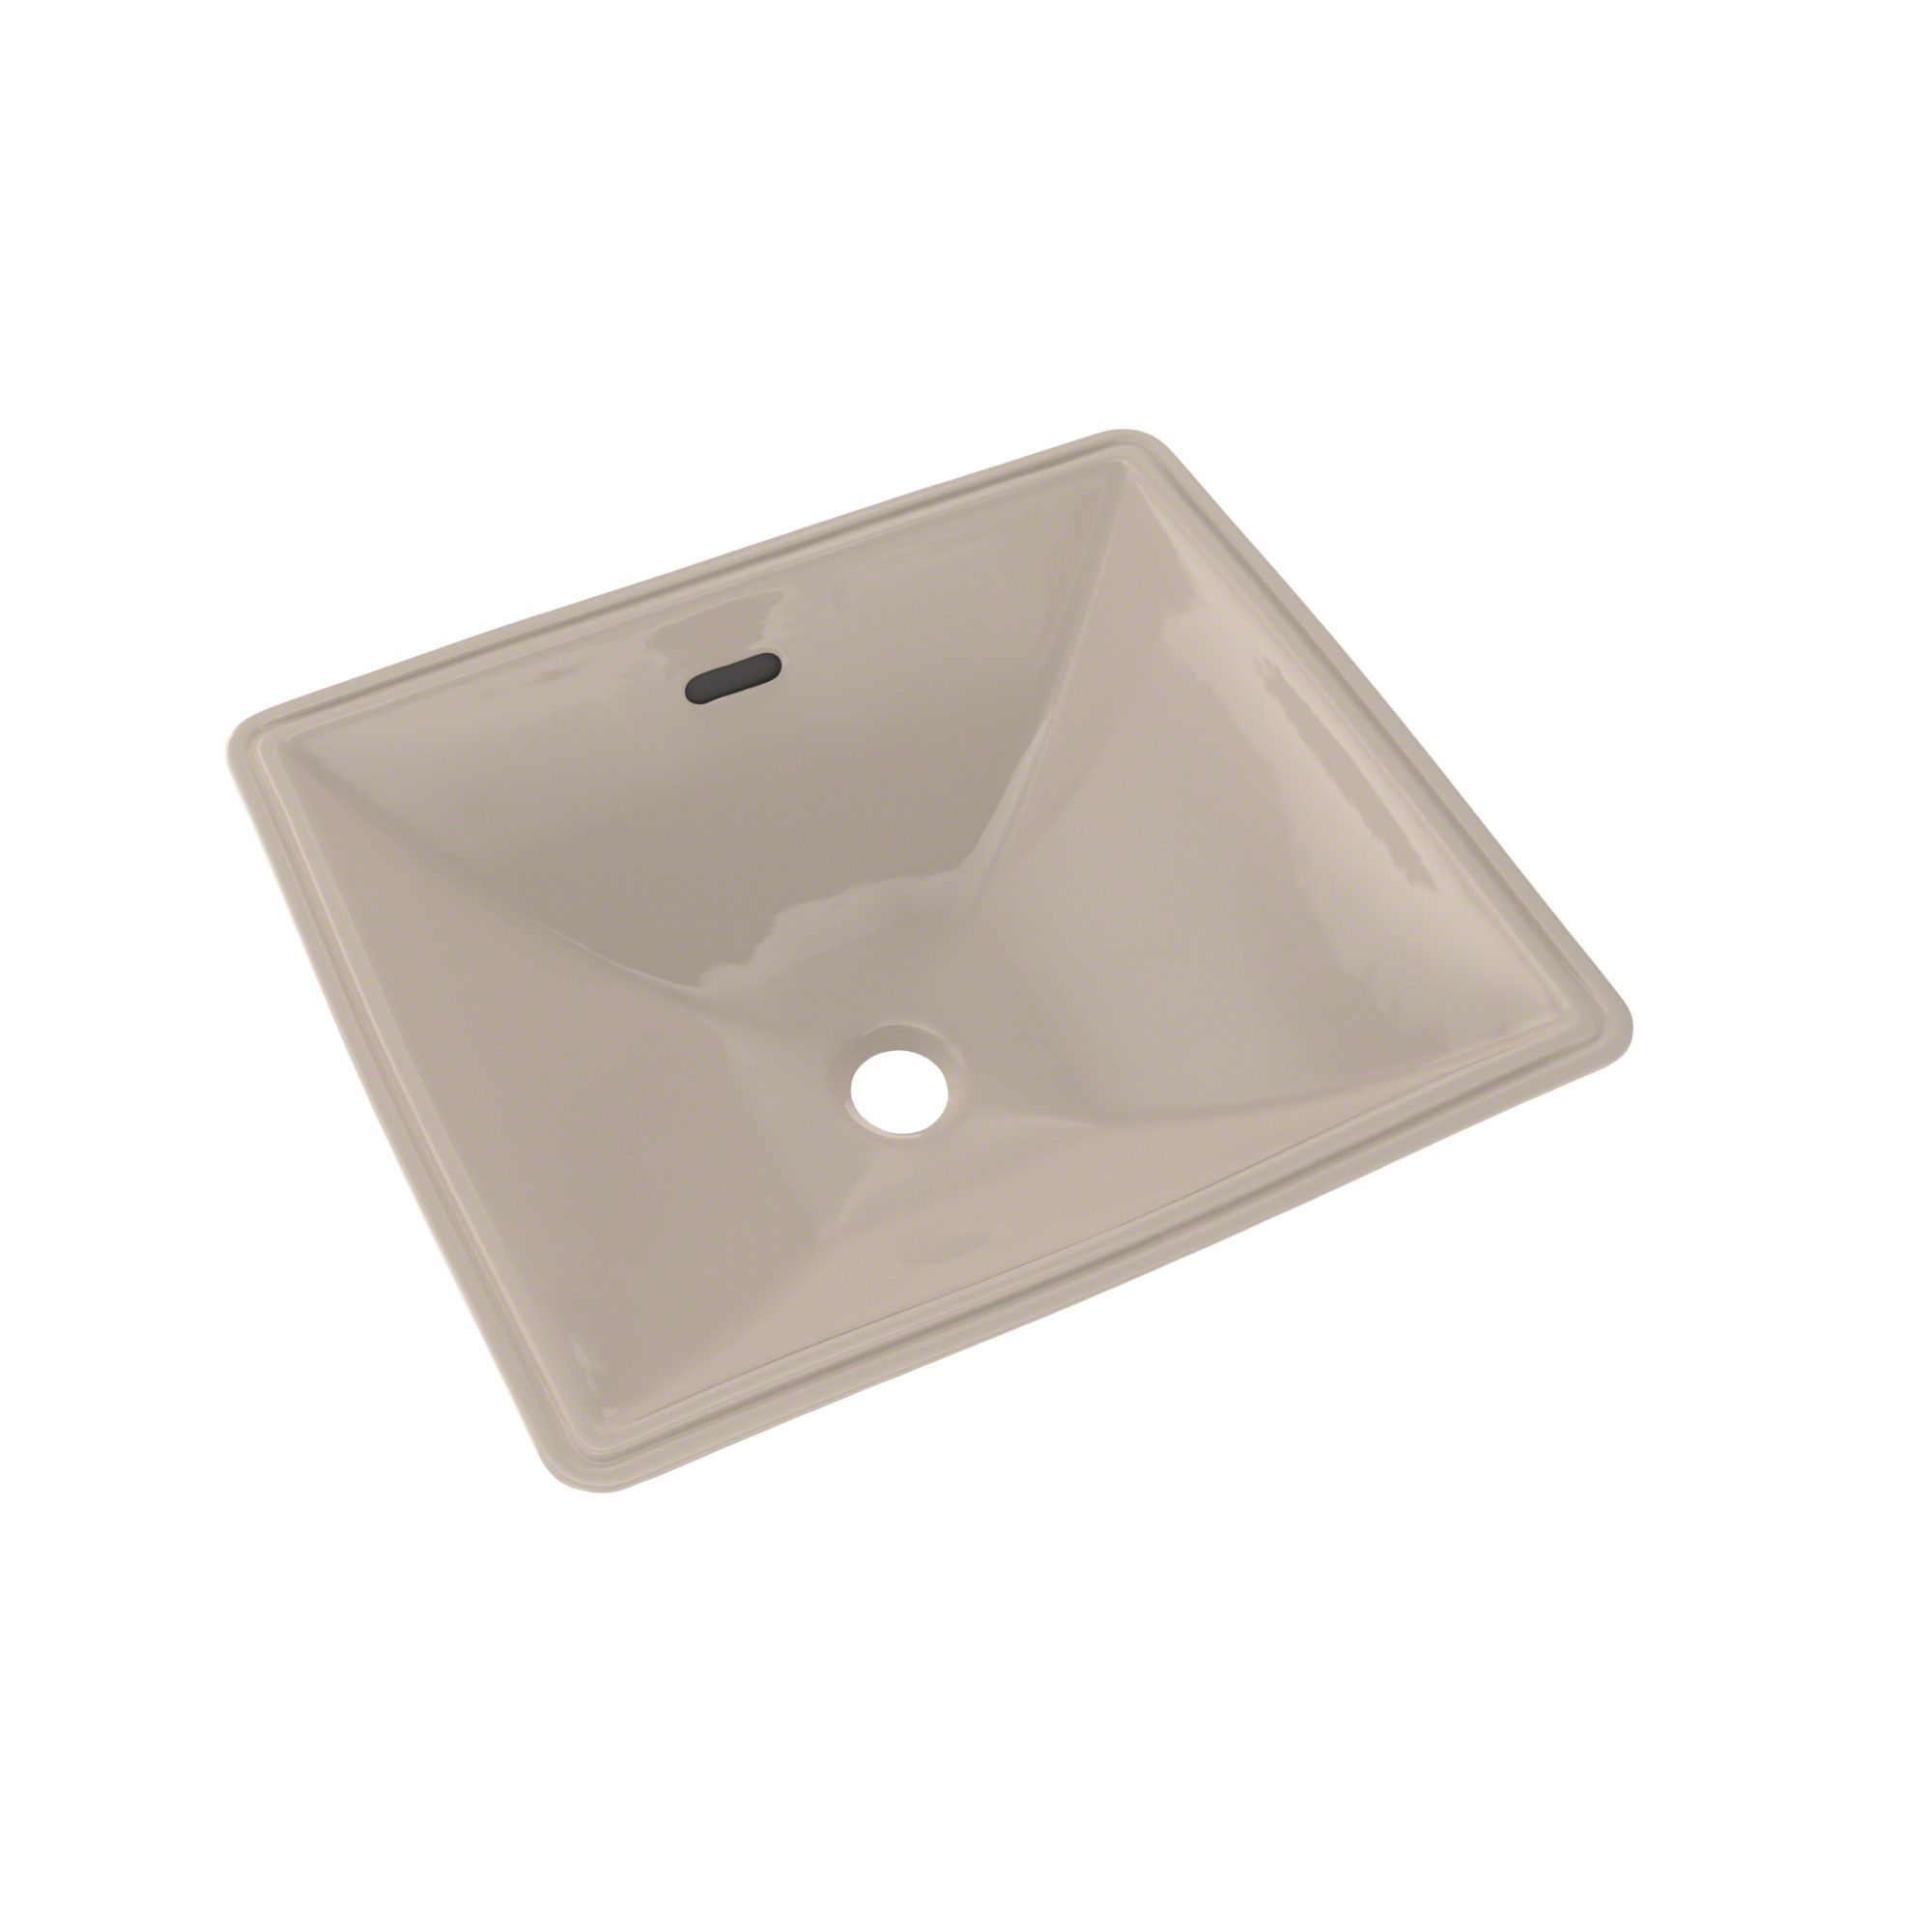 Toto Legato Rectangular Undermount Bathroom Sink With Cefiontect